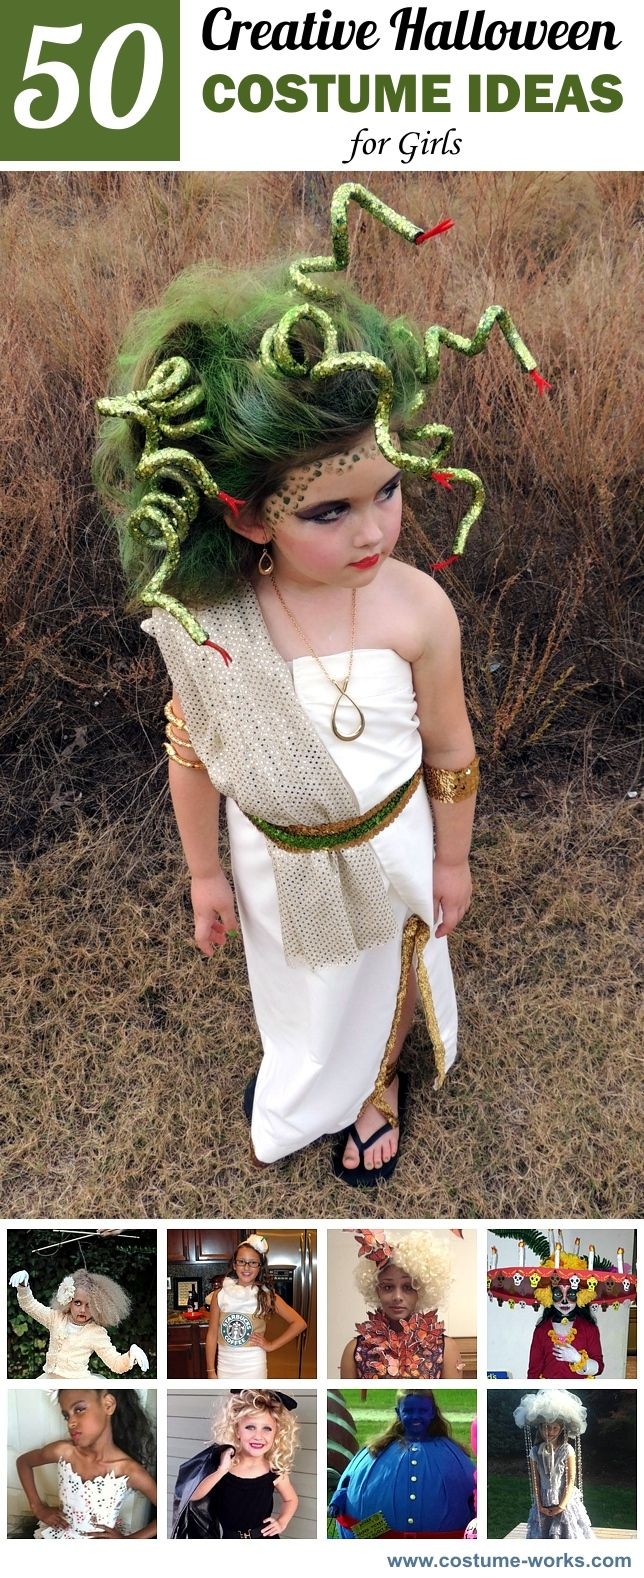 50 Creative DIY Halloween Costume Ideas for Girls